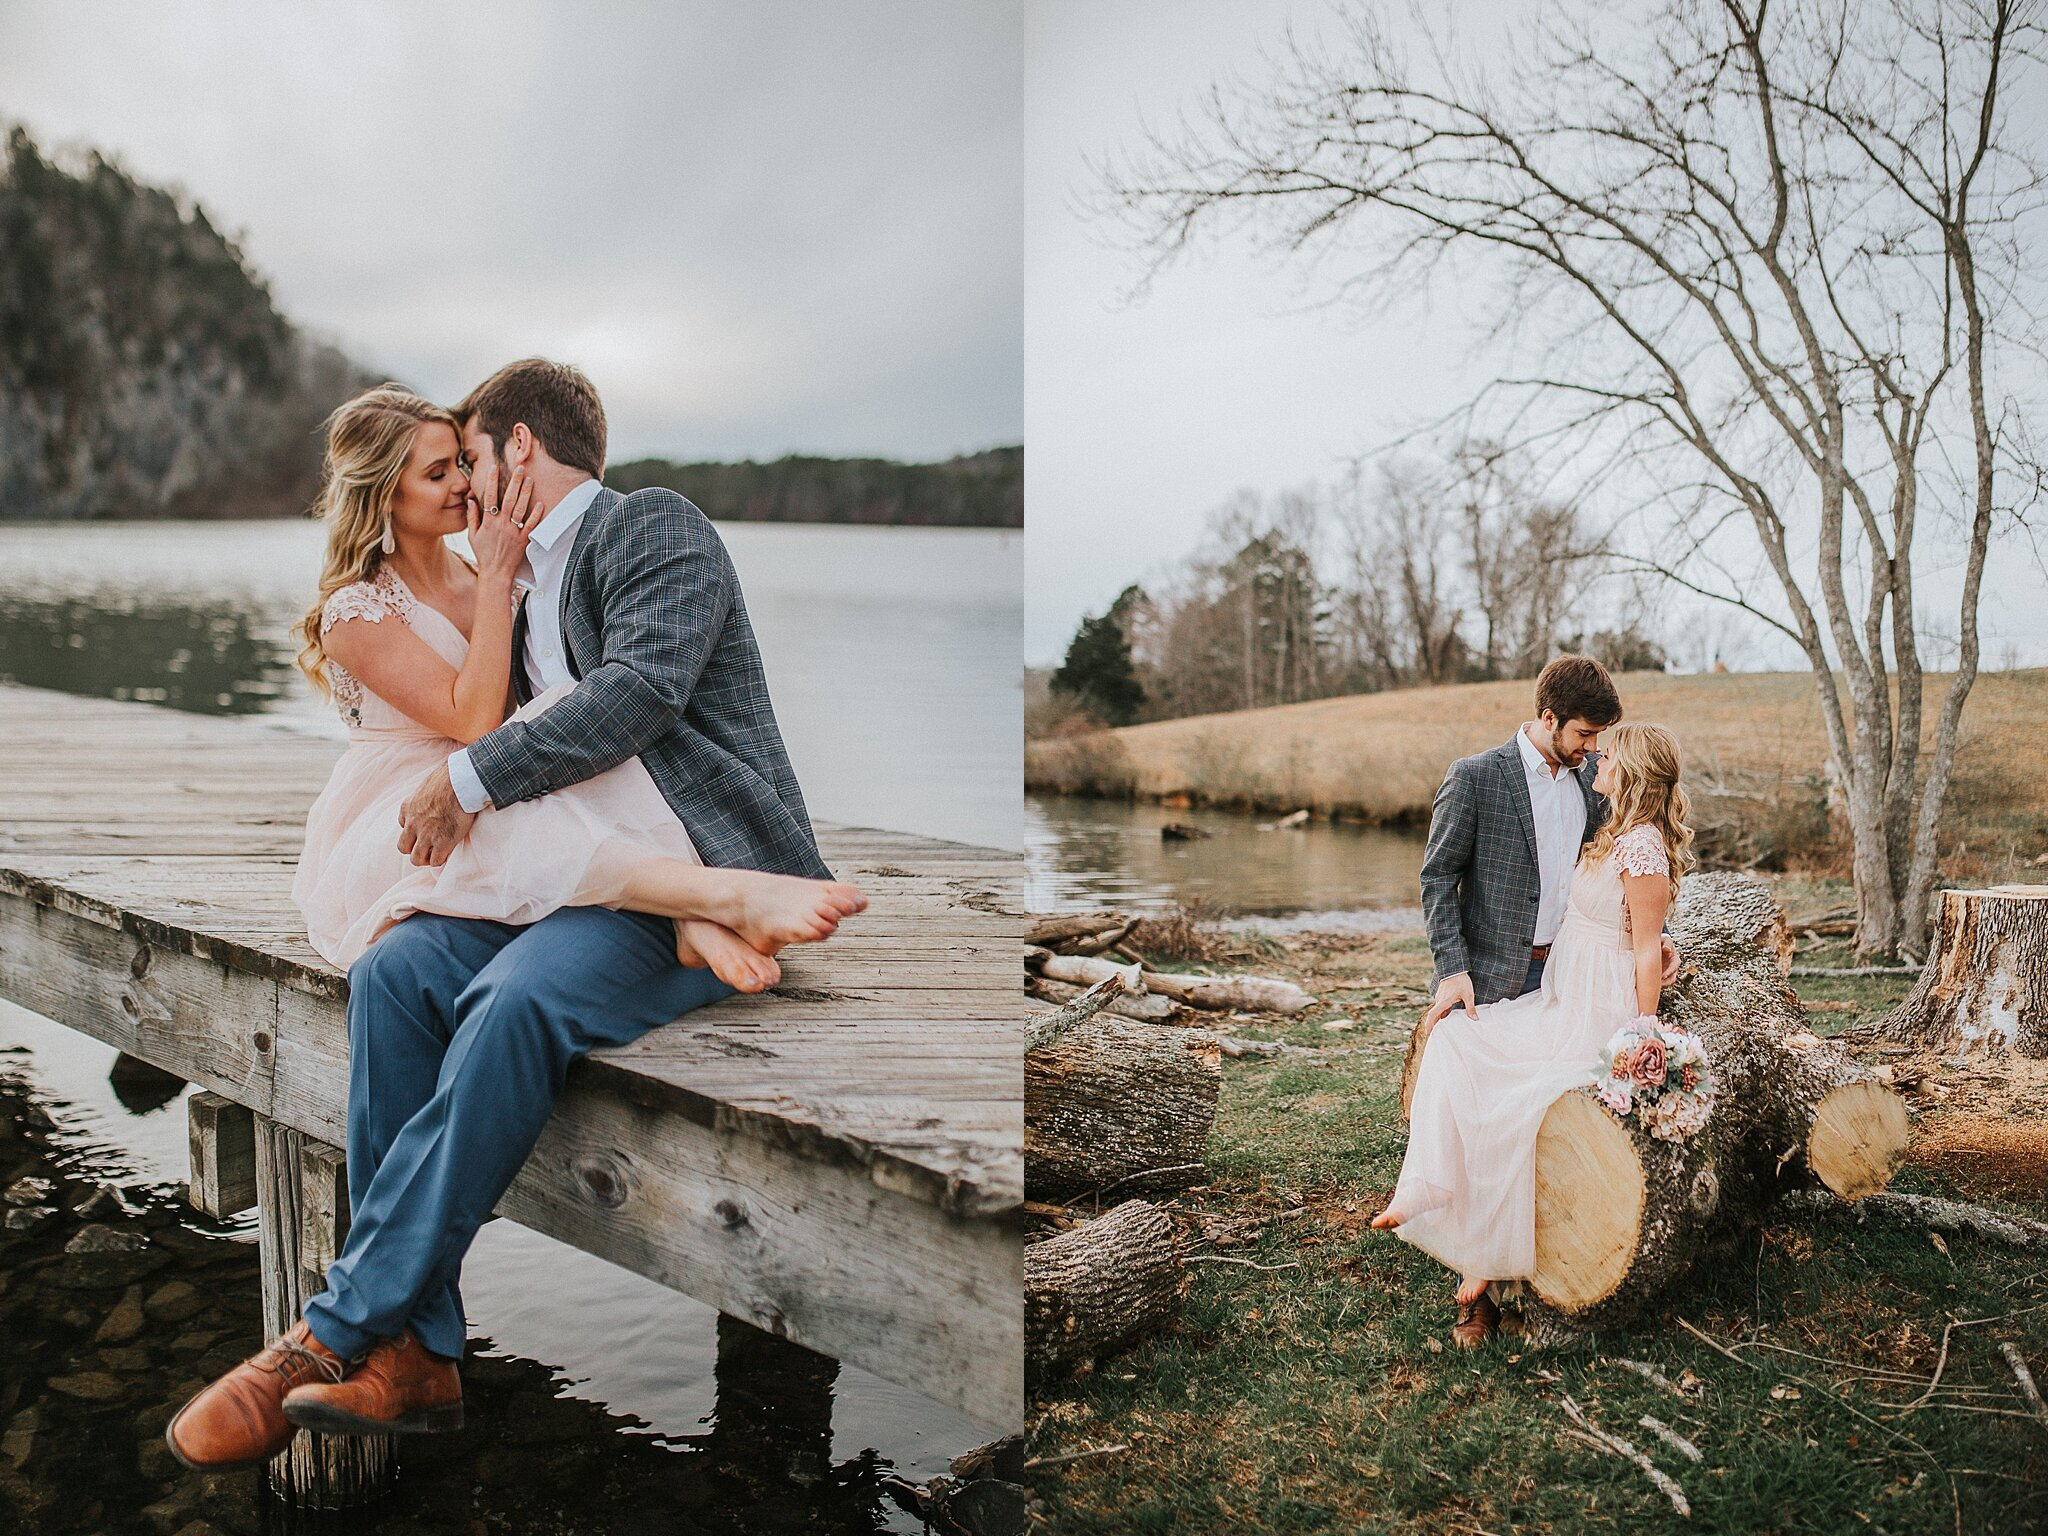 knoxville-tennessee-melton-hill-engagement-proposal-session-knoxville-wedding-photographer-look-for-the-light-photo-video